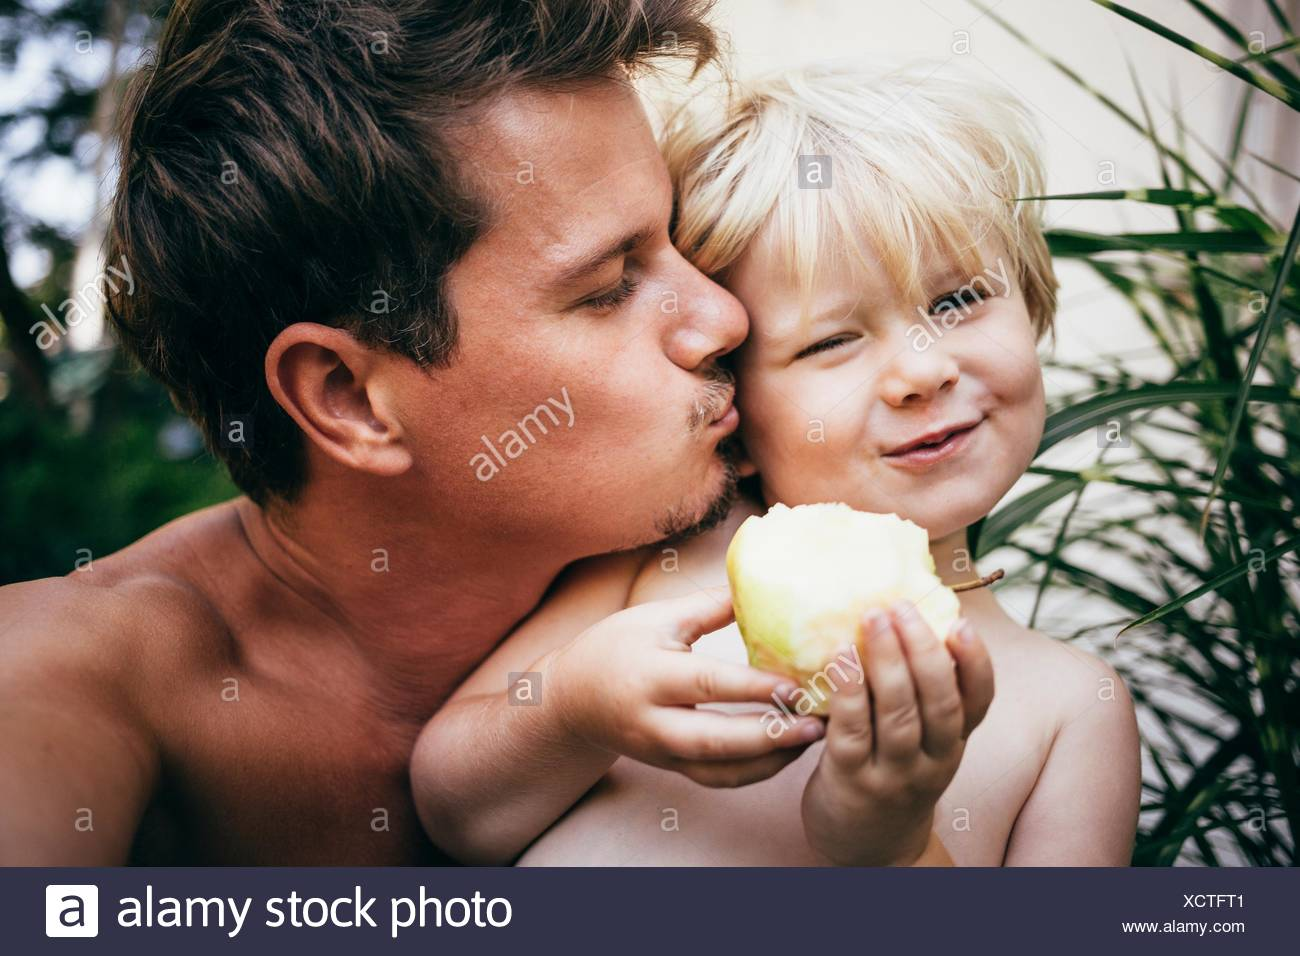 Head and shoulders of father kissing son on cheek, Bludenz, Vorarlberg, Austria - Stock Image